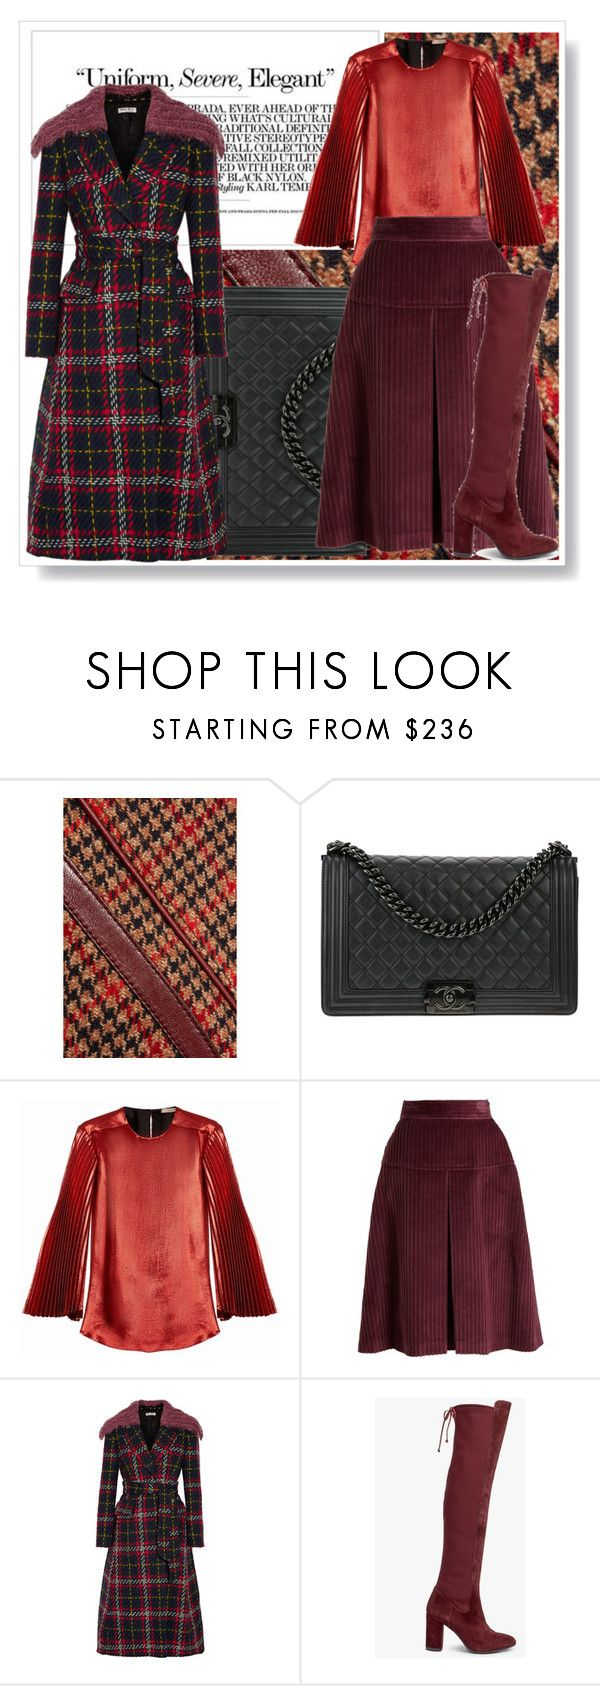 """Statement Coats: Plaid"" by muhammadtanim on Polyvore featuring Prada, Chanel, Christopher Kane, Miu Miu and Somerset by Alice Temperley"